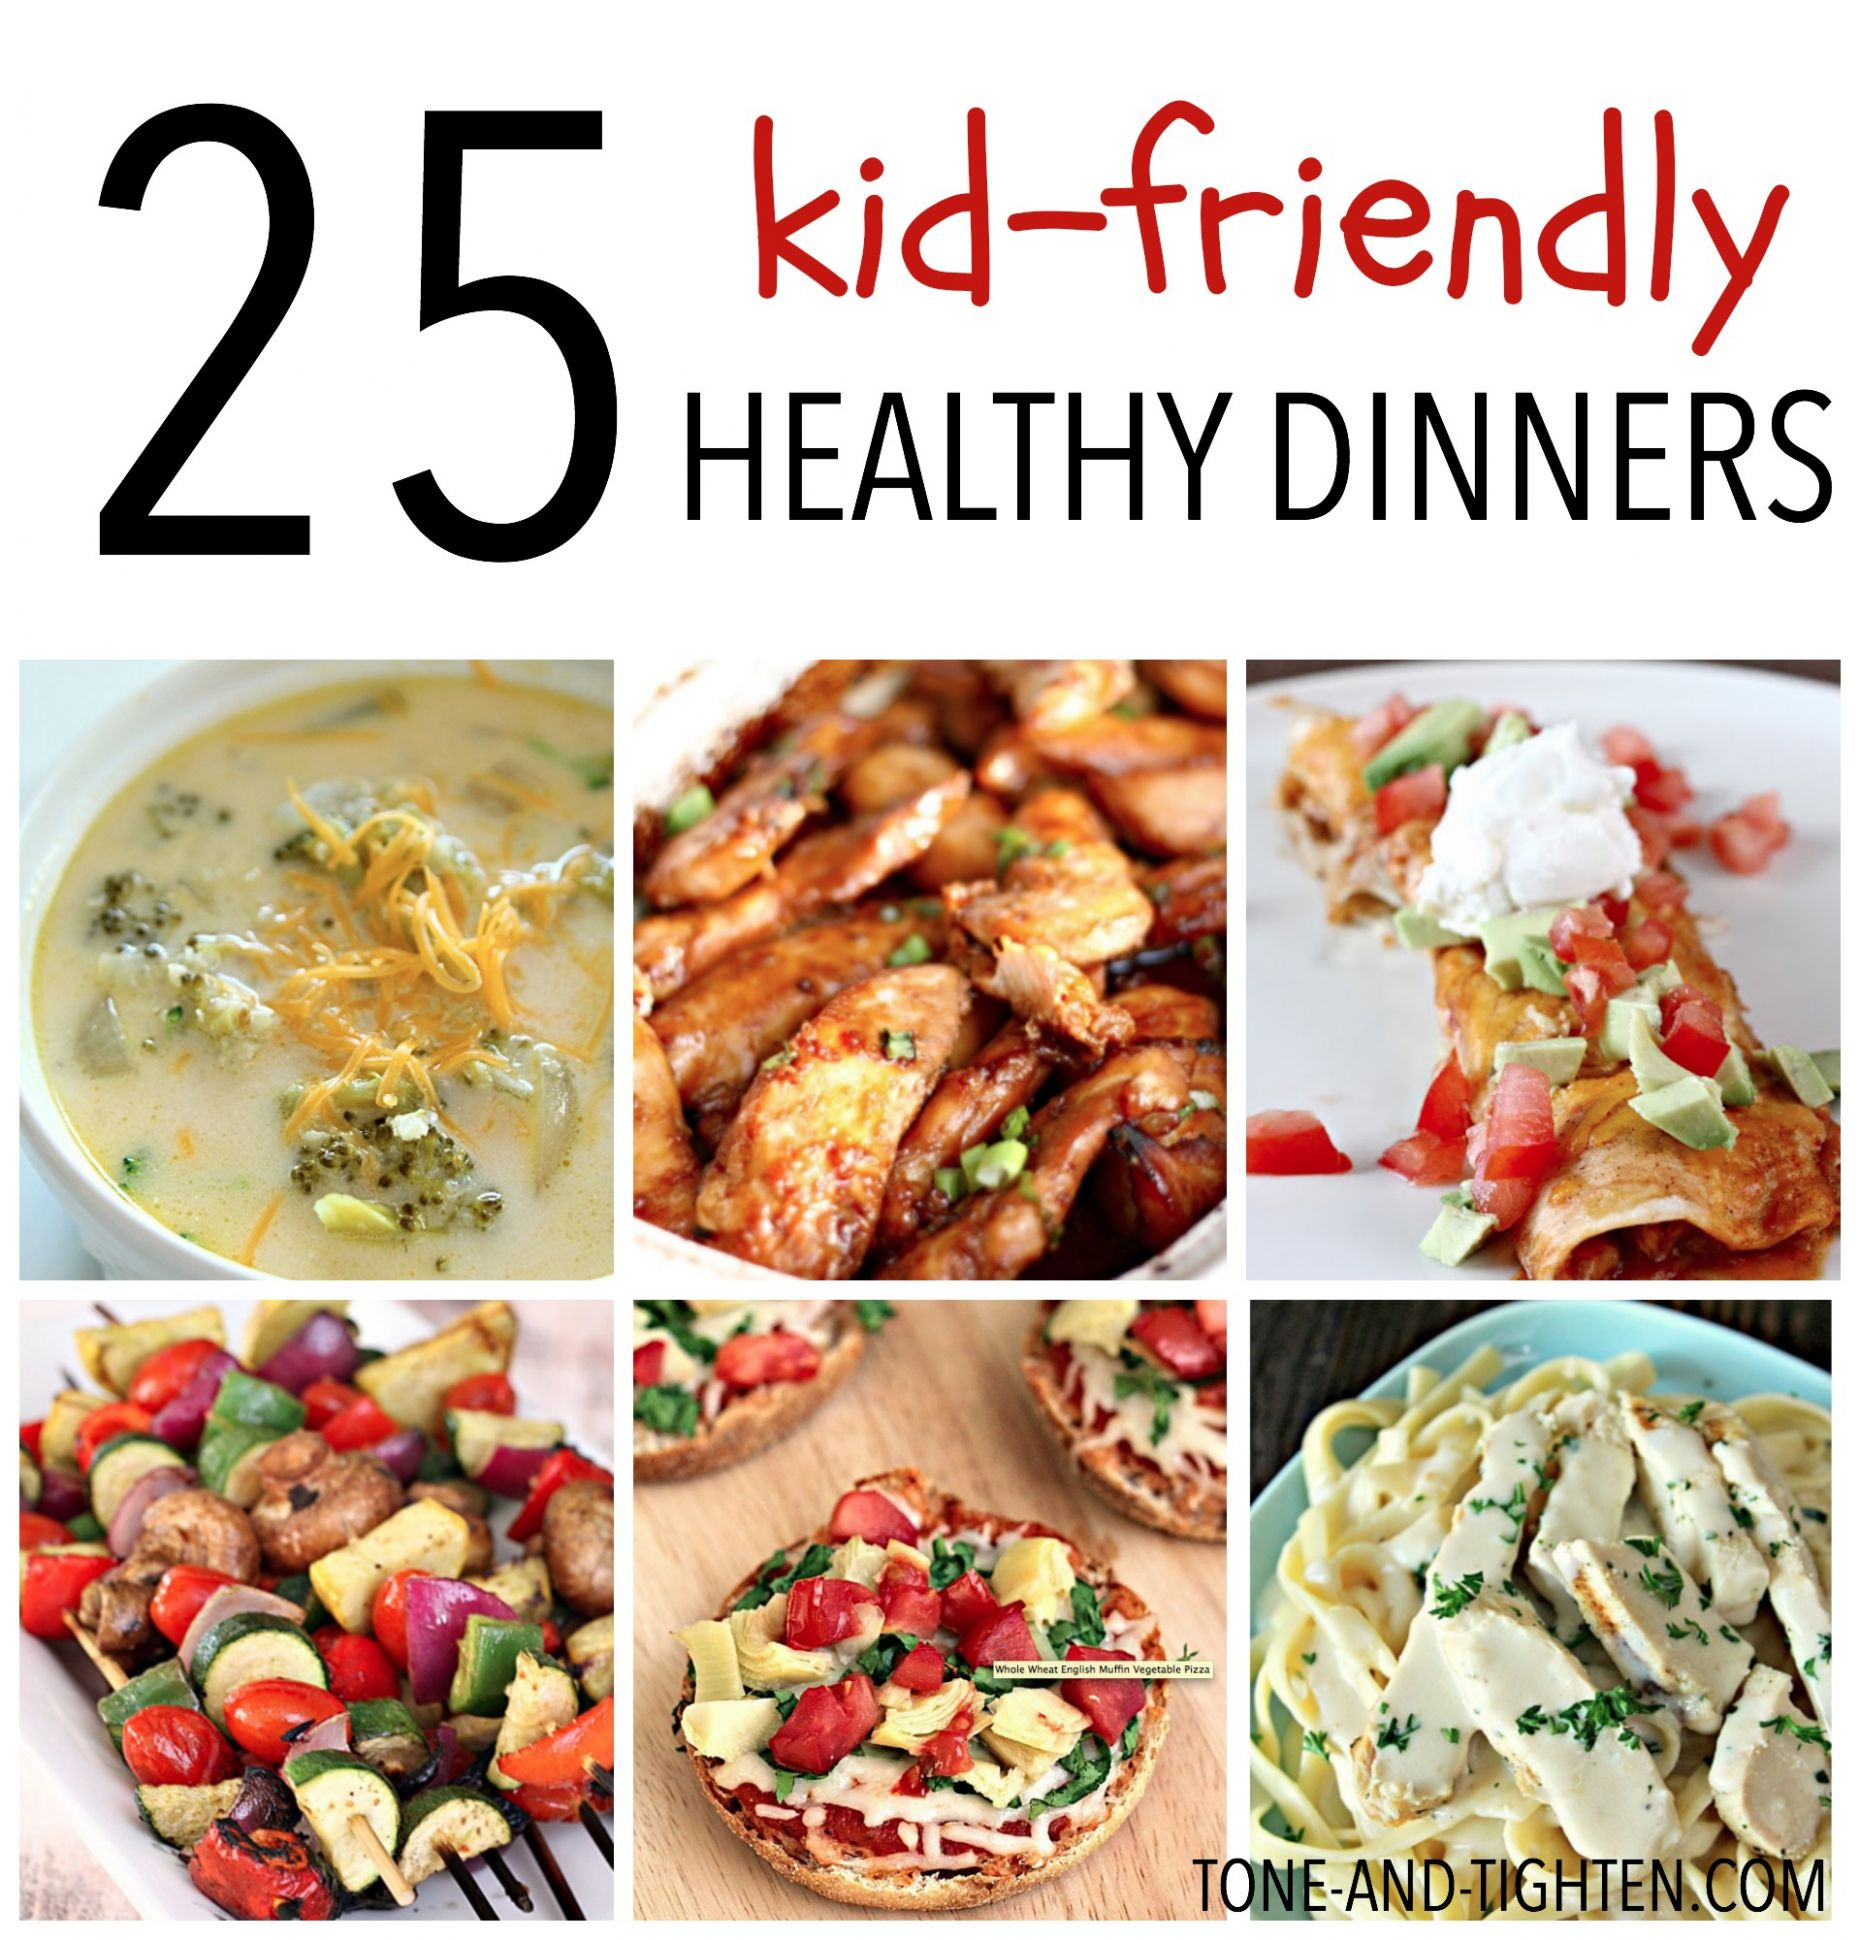 12 Kid-Friendly Healthy Dinners | Tone and Tighten - Healthy Recipes Kid Friendly Dinner